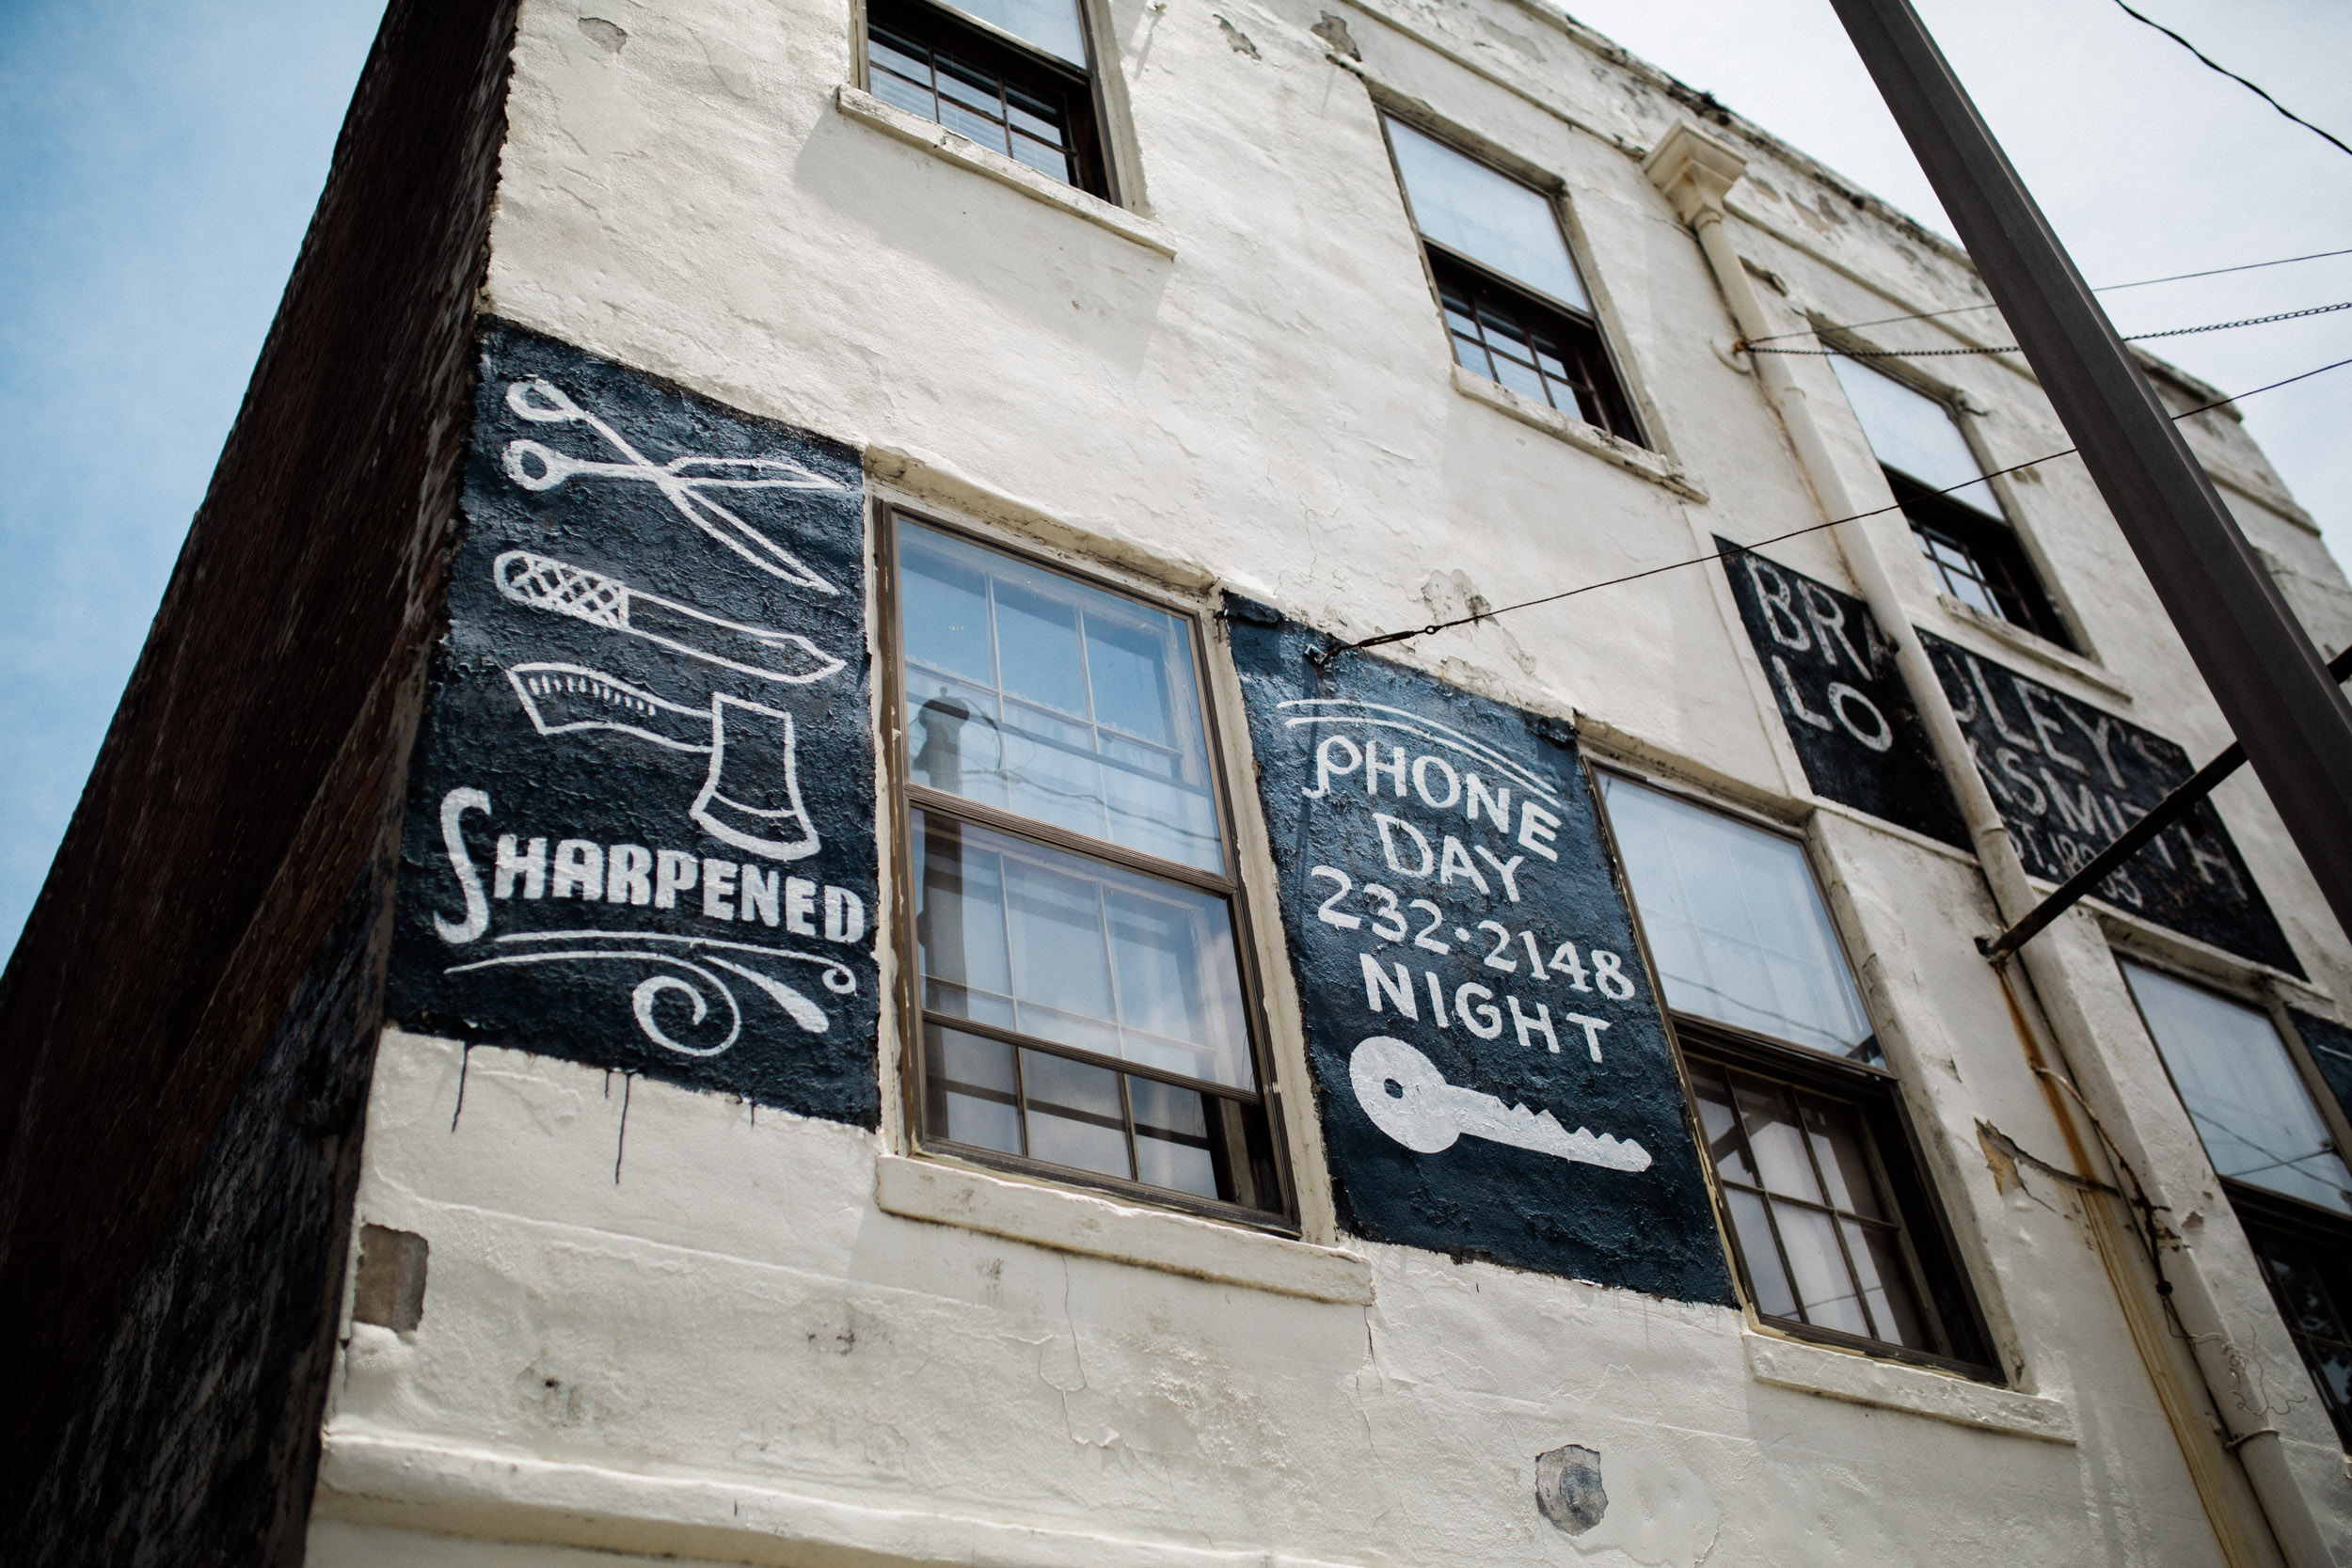 I'm a little obsessed with old, hand-painted signage on the buildings of Savannah